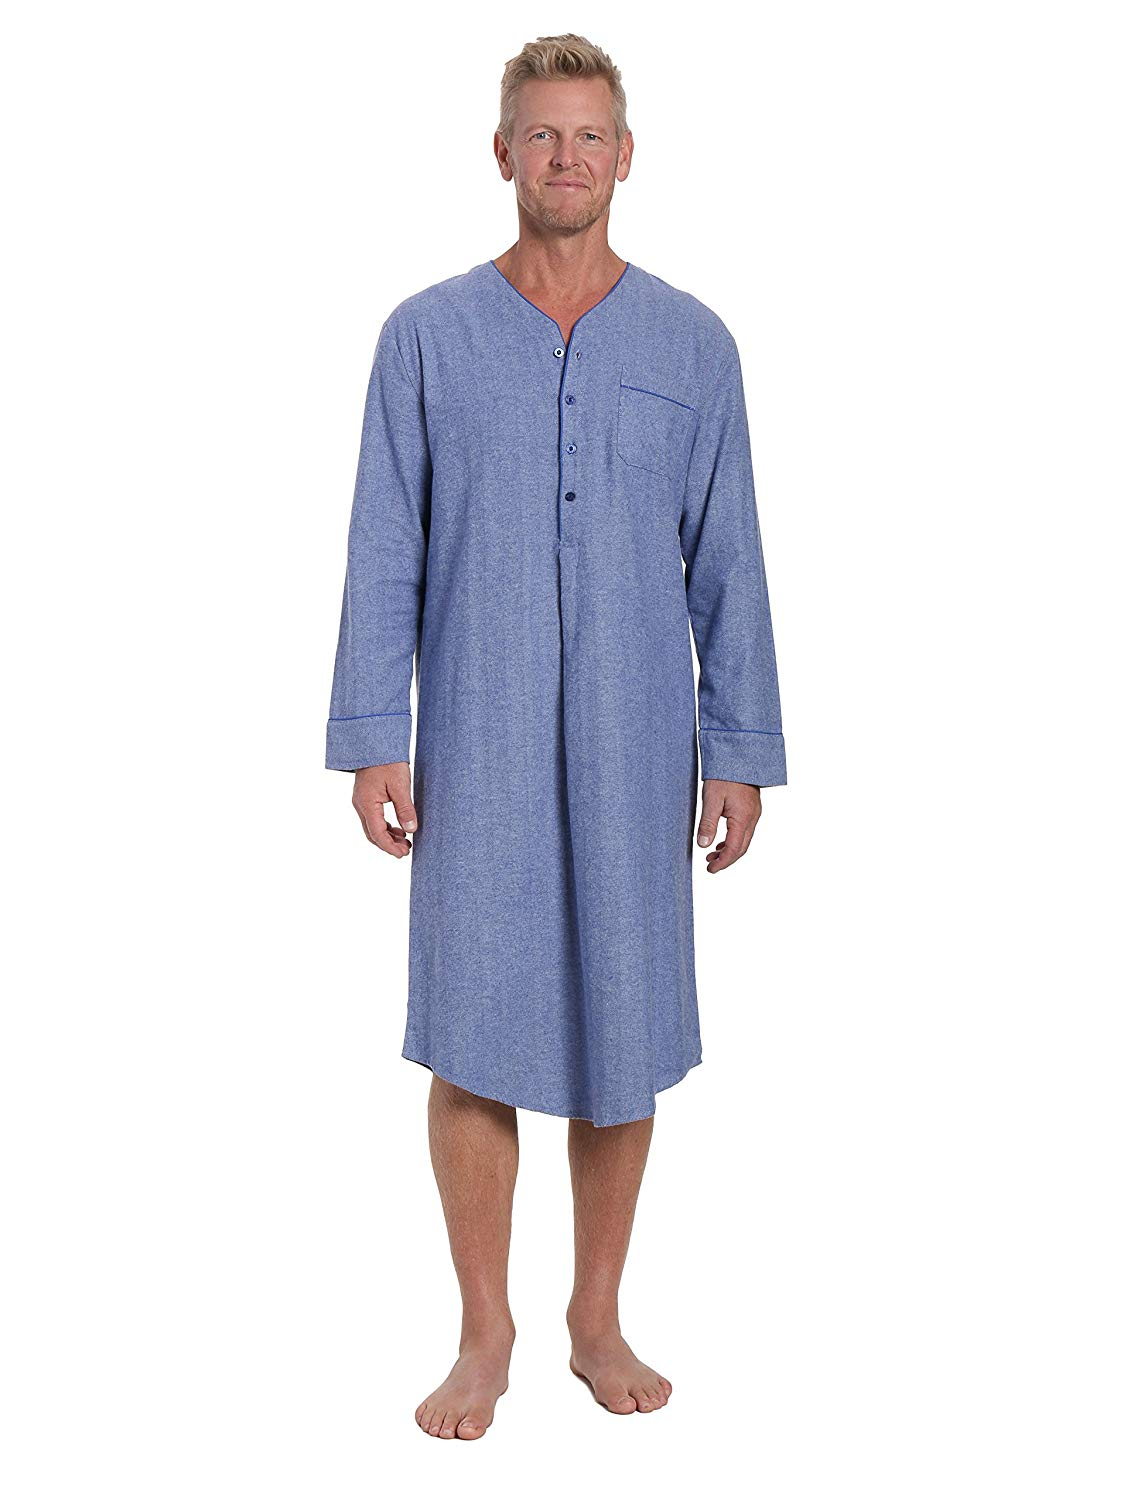 324fb72c094 Get Quotations · Noble Mount Mens 100% Cotton Flannel Nightshirt